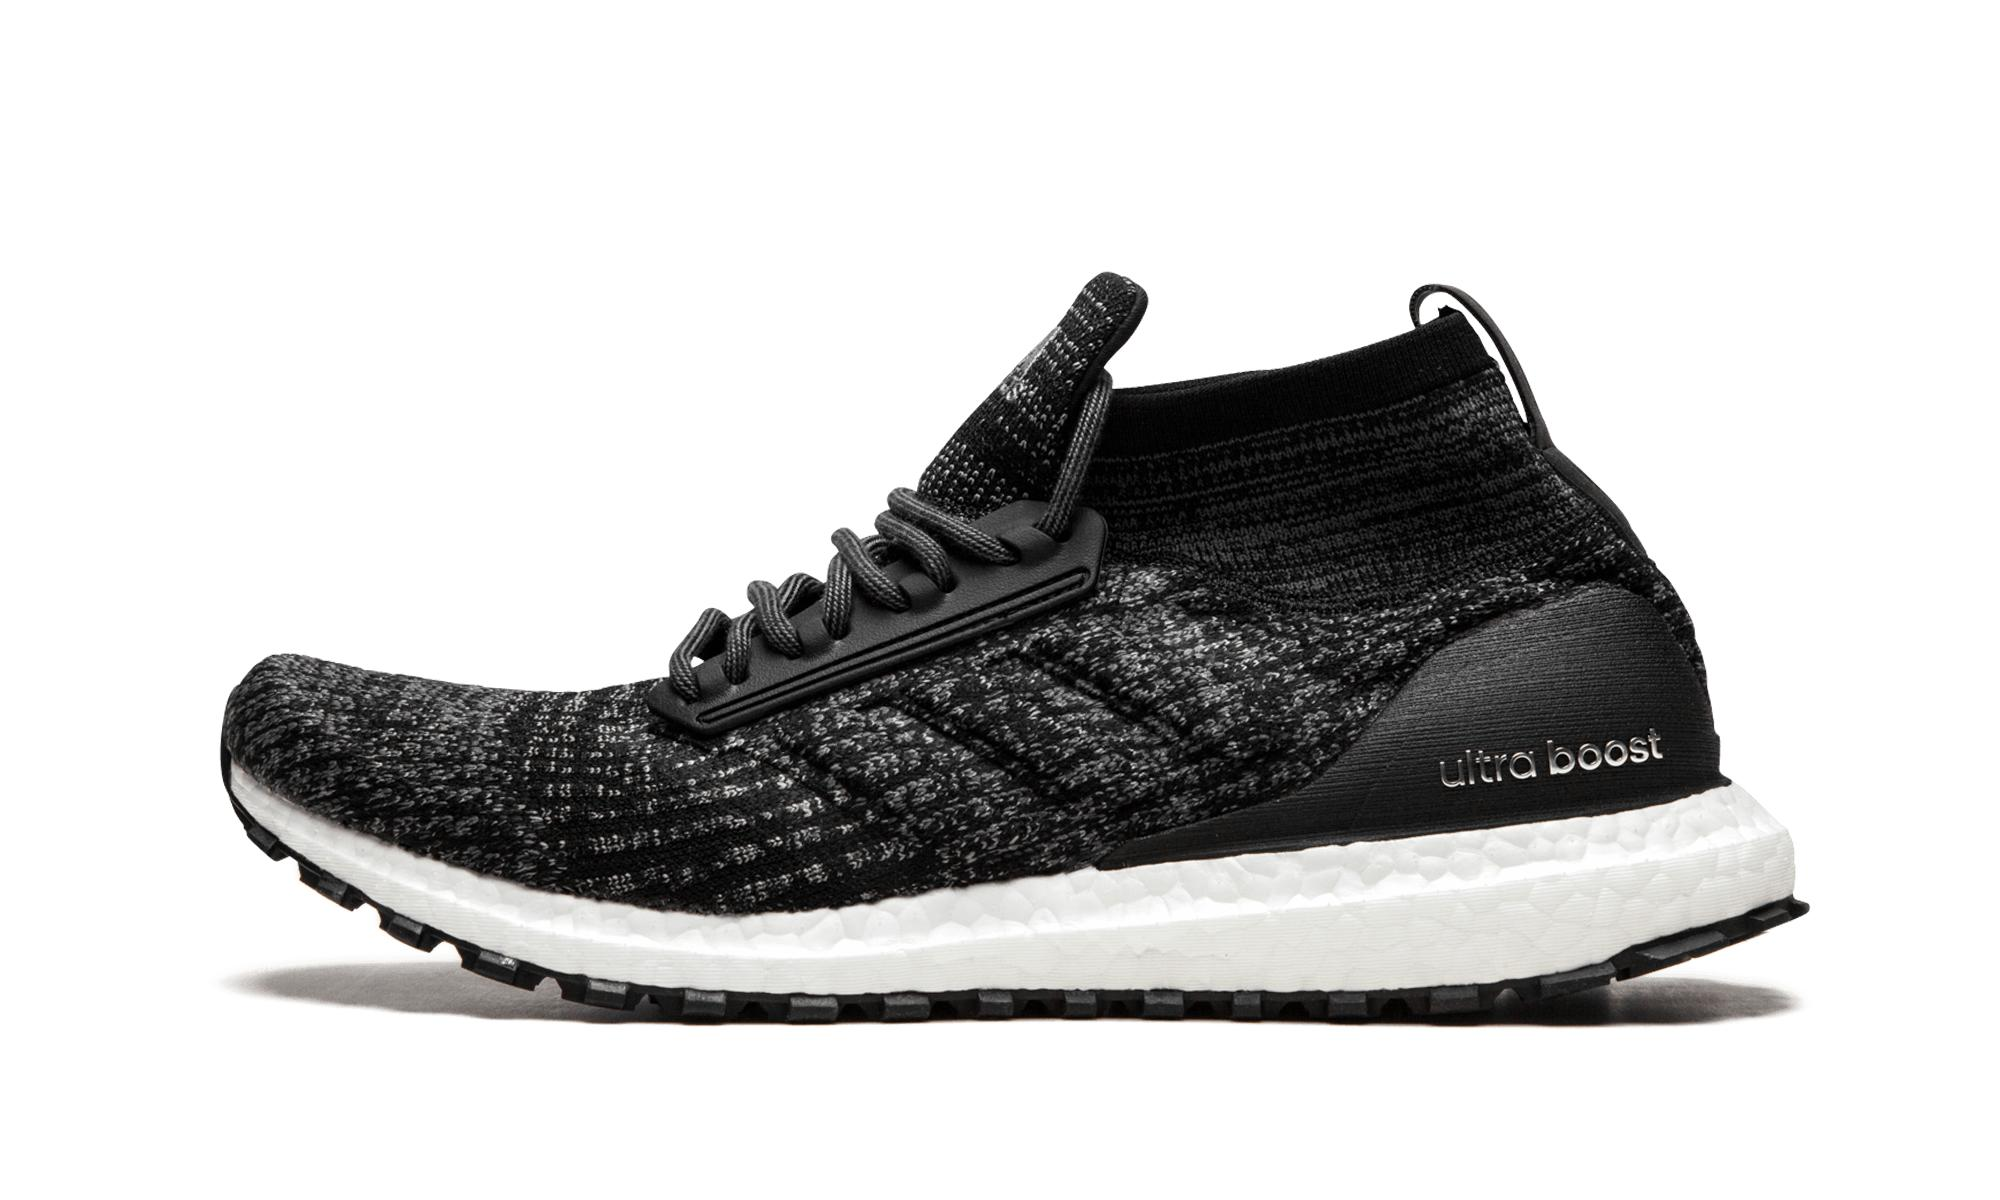 43d7474bbec Lyst - adidas Ultraboost All Terrain in Black for Men - Save 9%